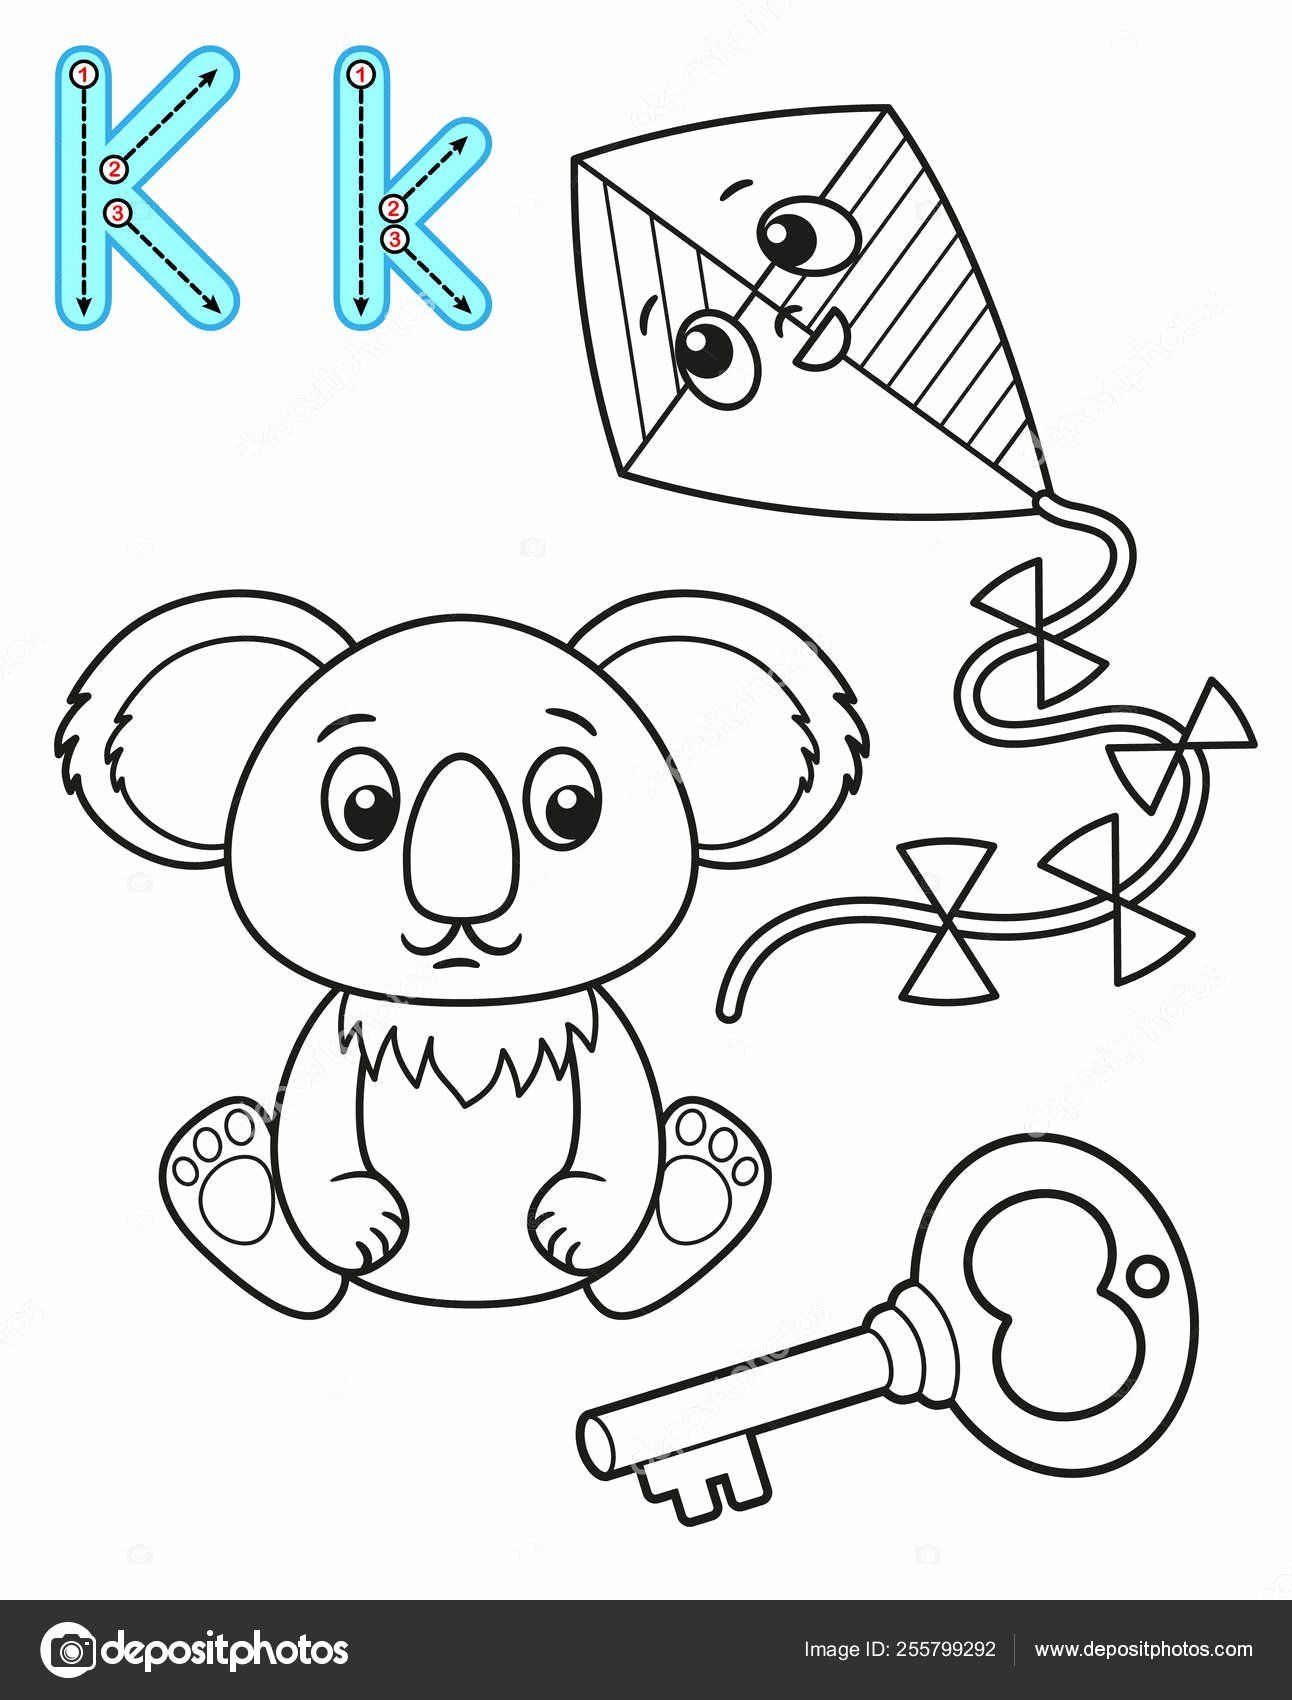 Coloring Activities For Preschoolers Unique Coloring Pages